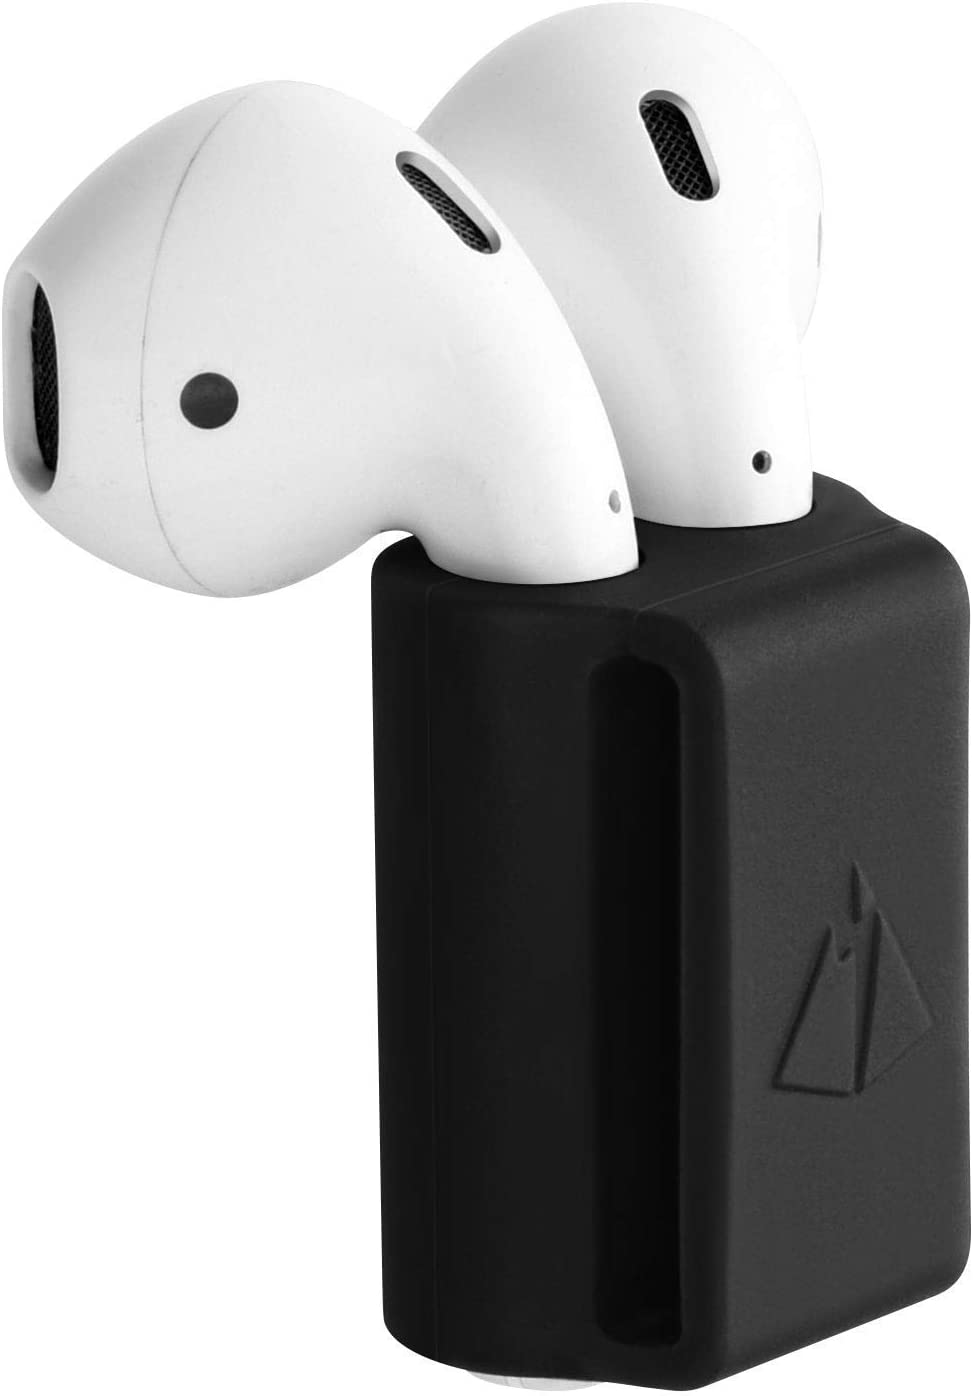 AirPods Holder Watch Strap Portable Anti-Lost Silicone Carrying Case for Apple AirPods (Black)